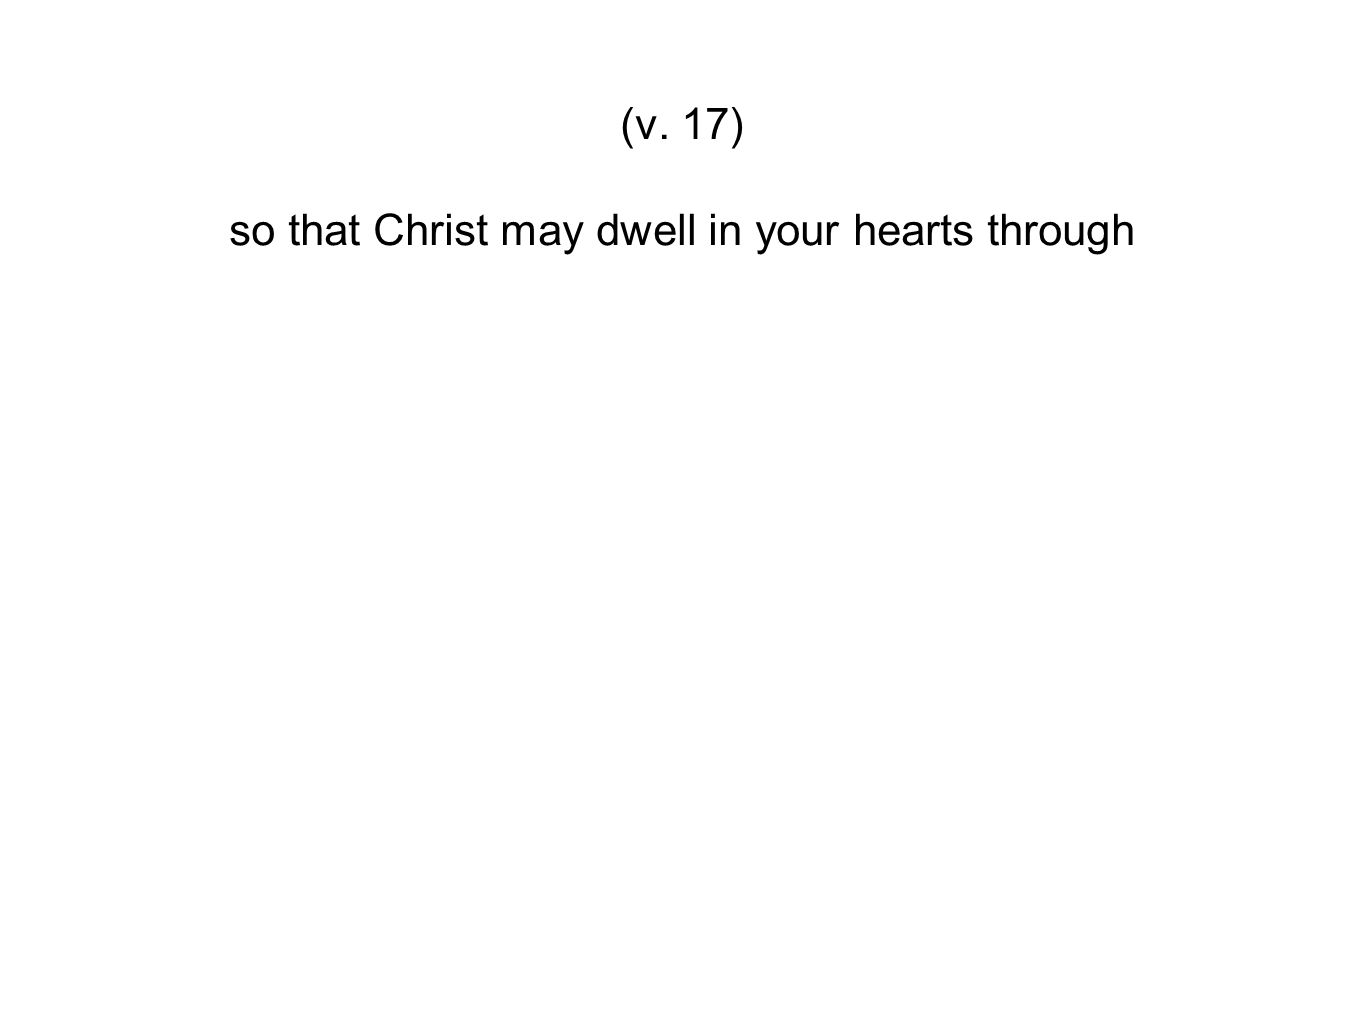 so that Christ may dwell in your hearts through